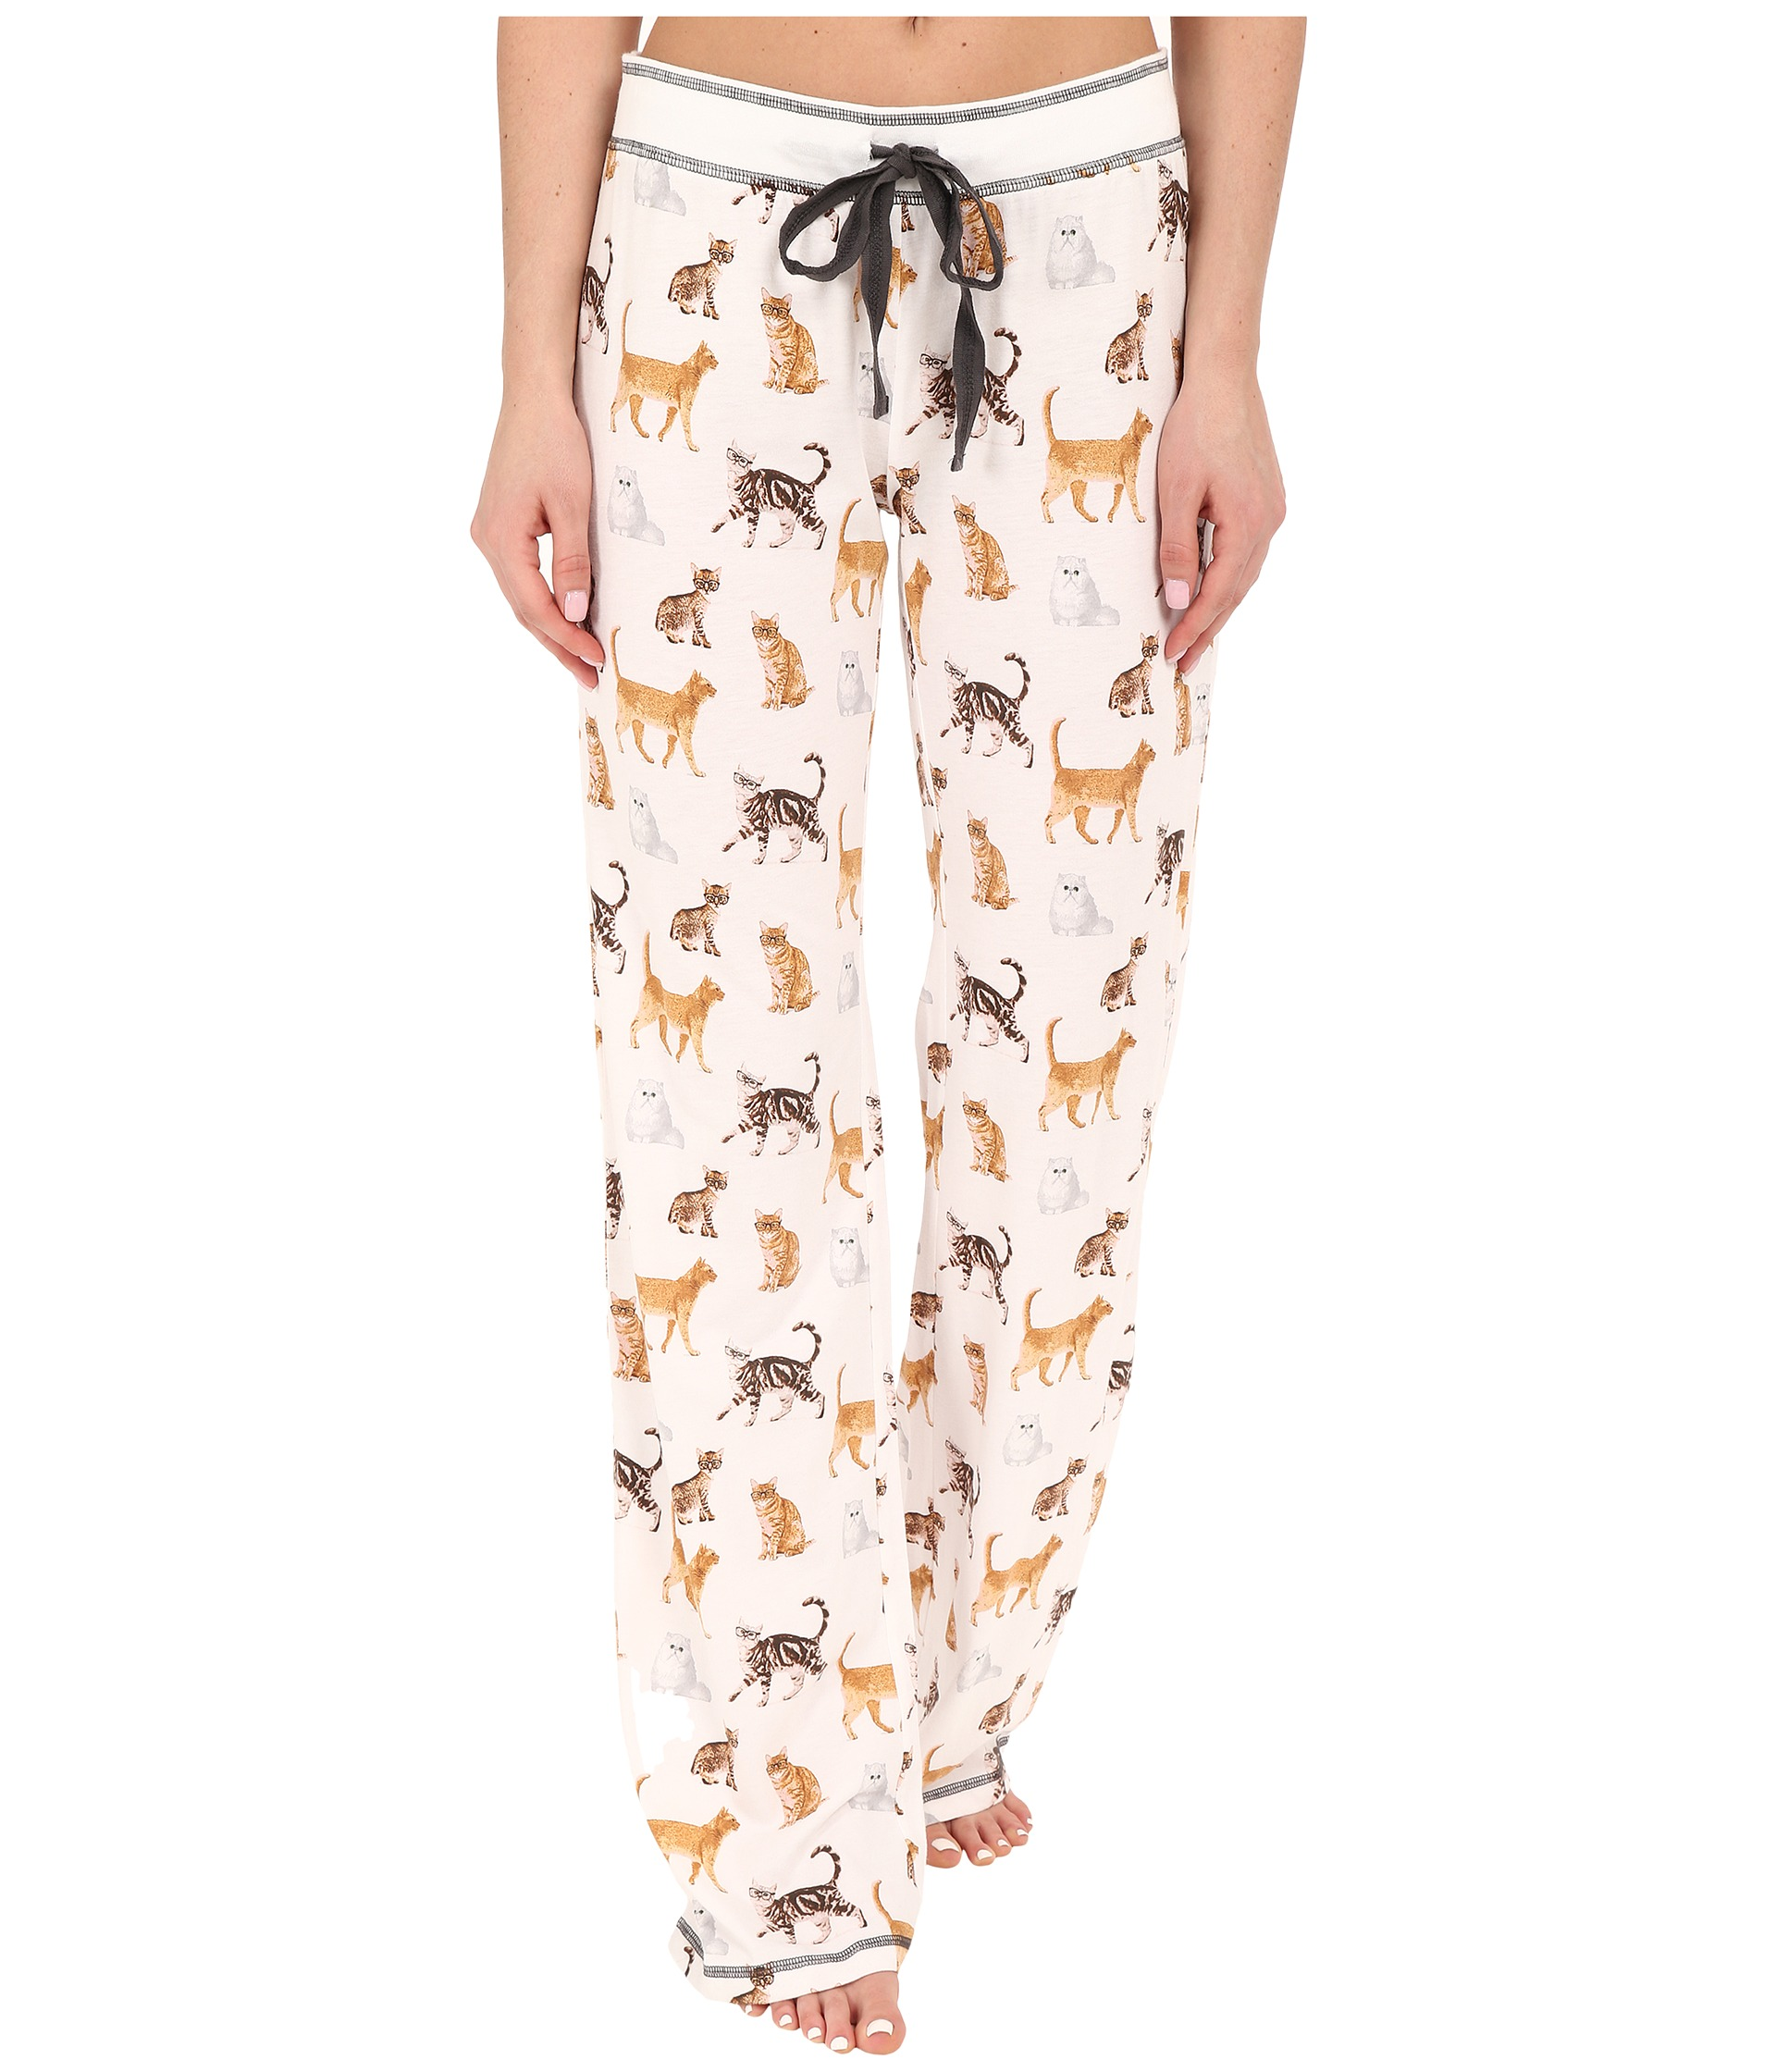 Since it's founding in , The Cat's Pajamas has been known for stylish, fun, consciously crafted and deliciously indulgent sleepwear. Their famous